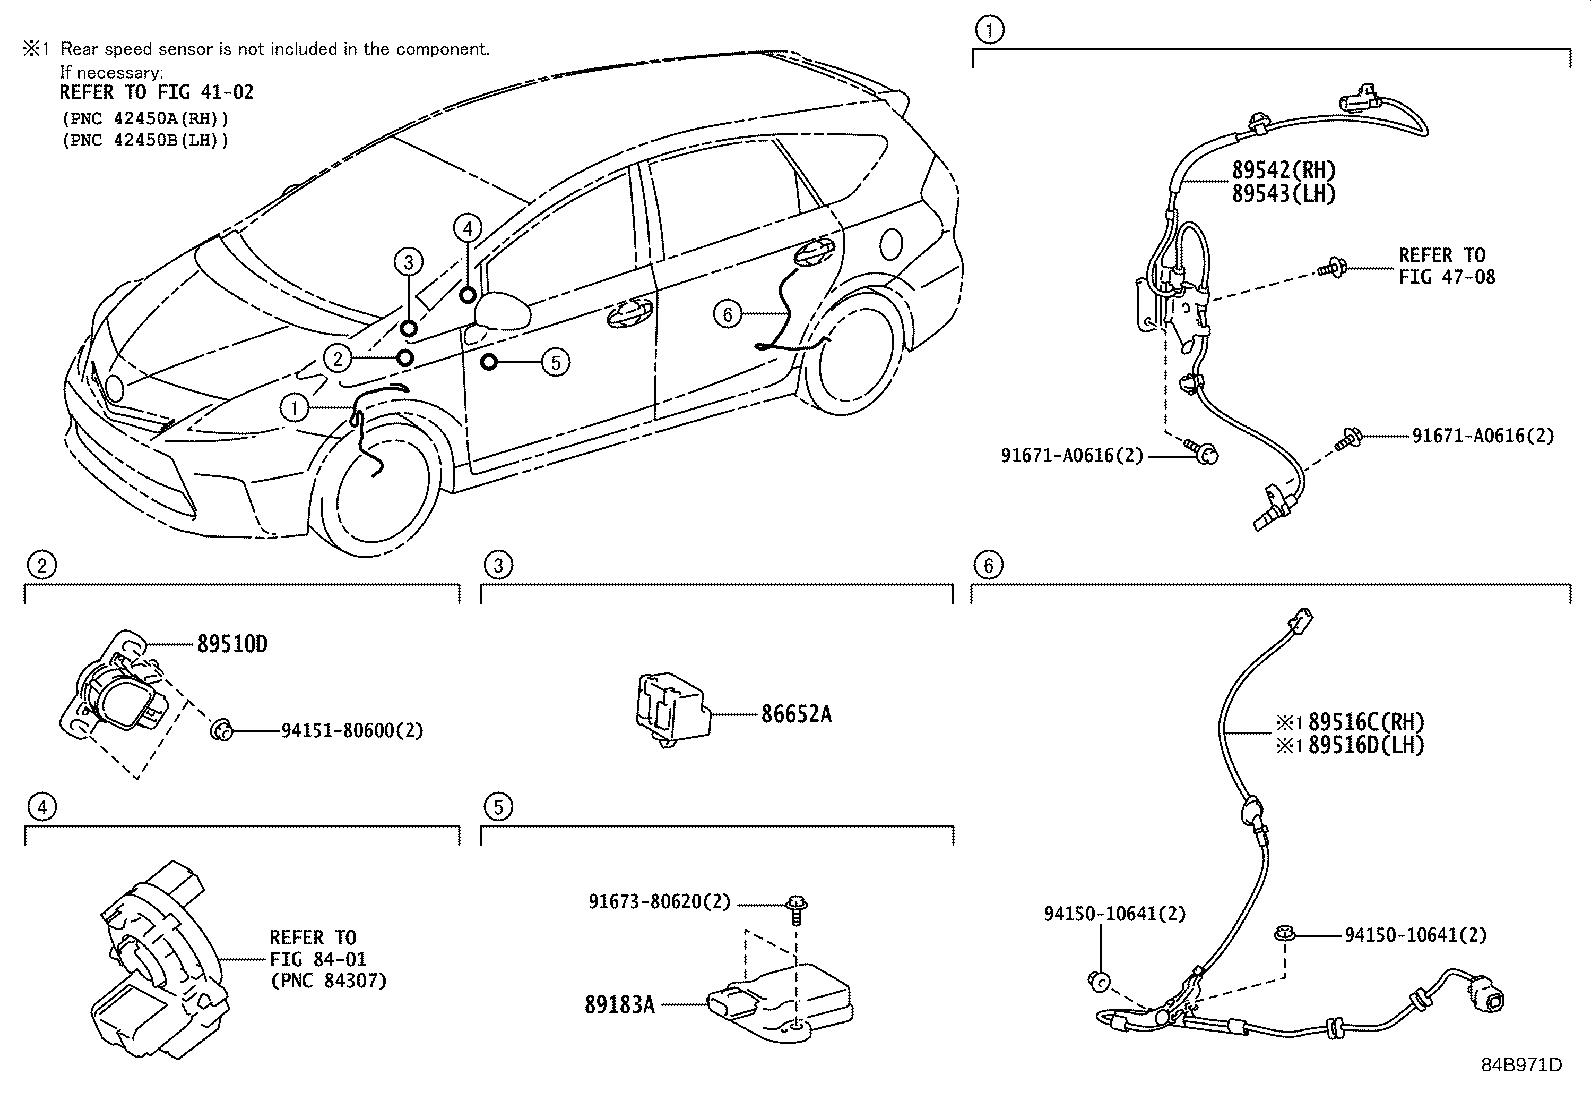 Toyota Prius v Abs wheel speed sensor wiring harness